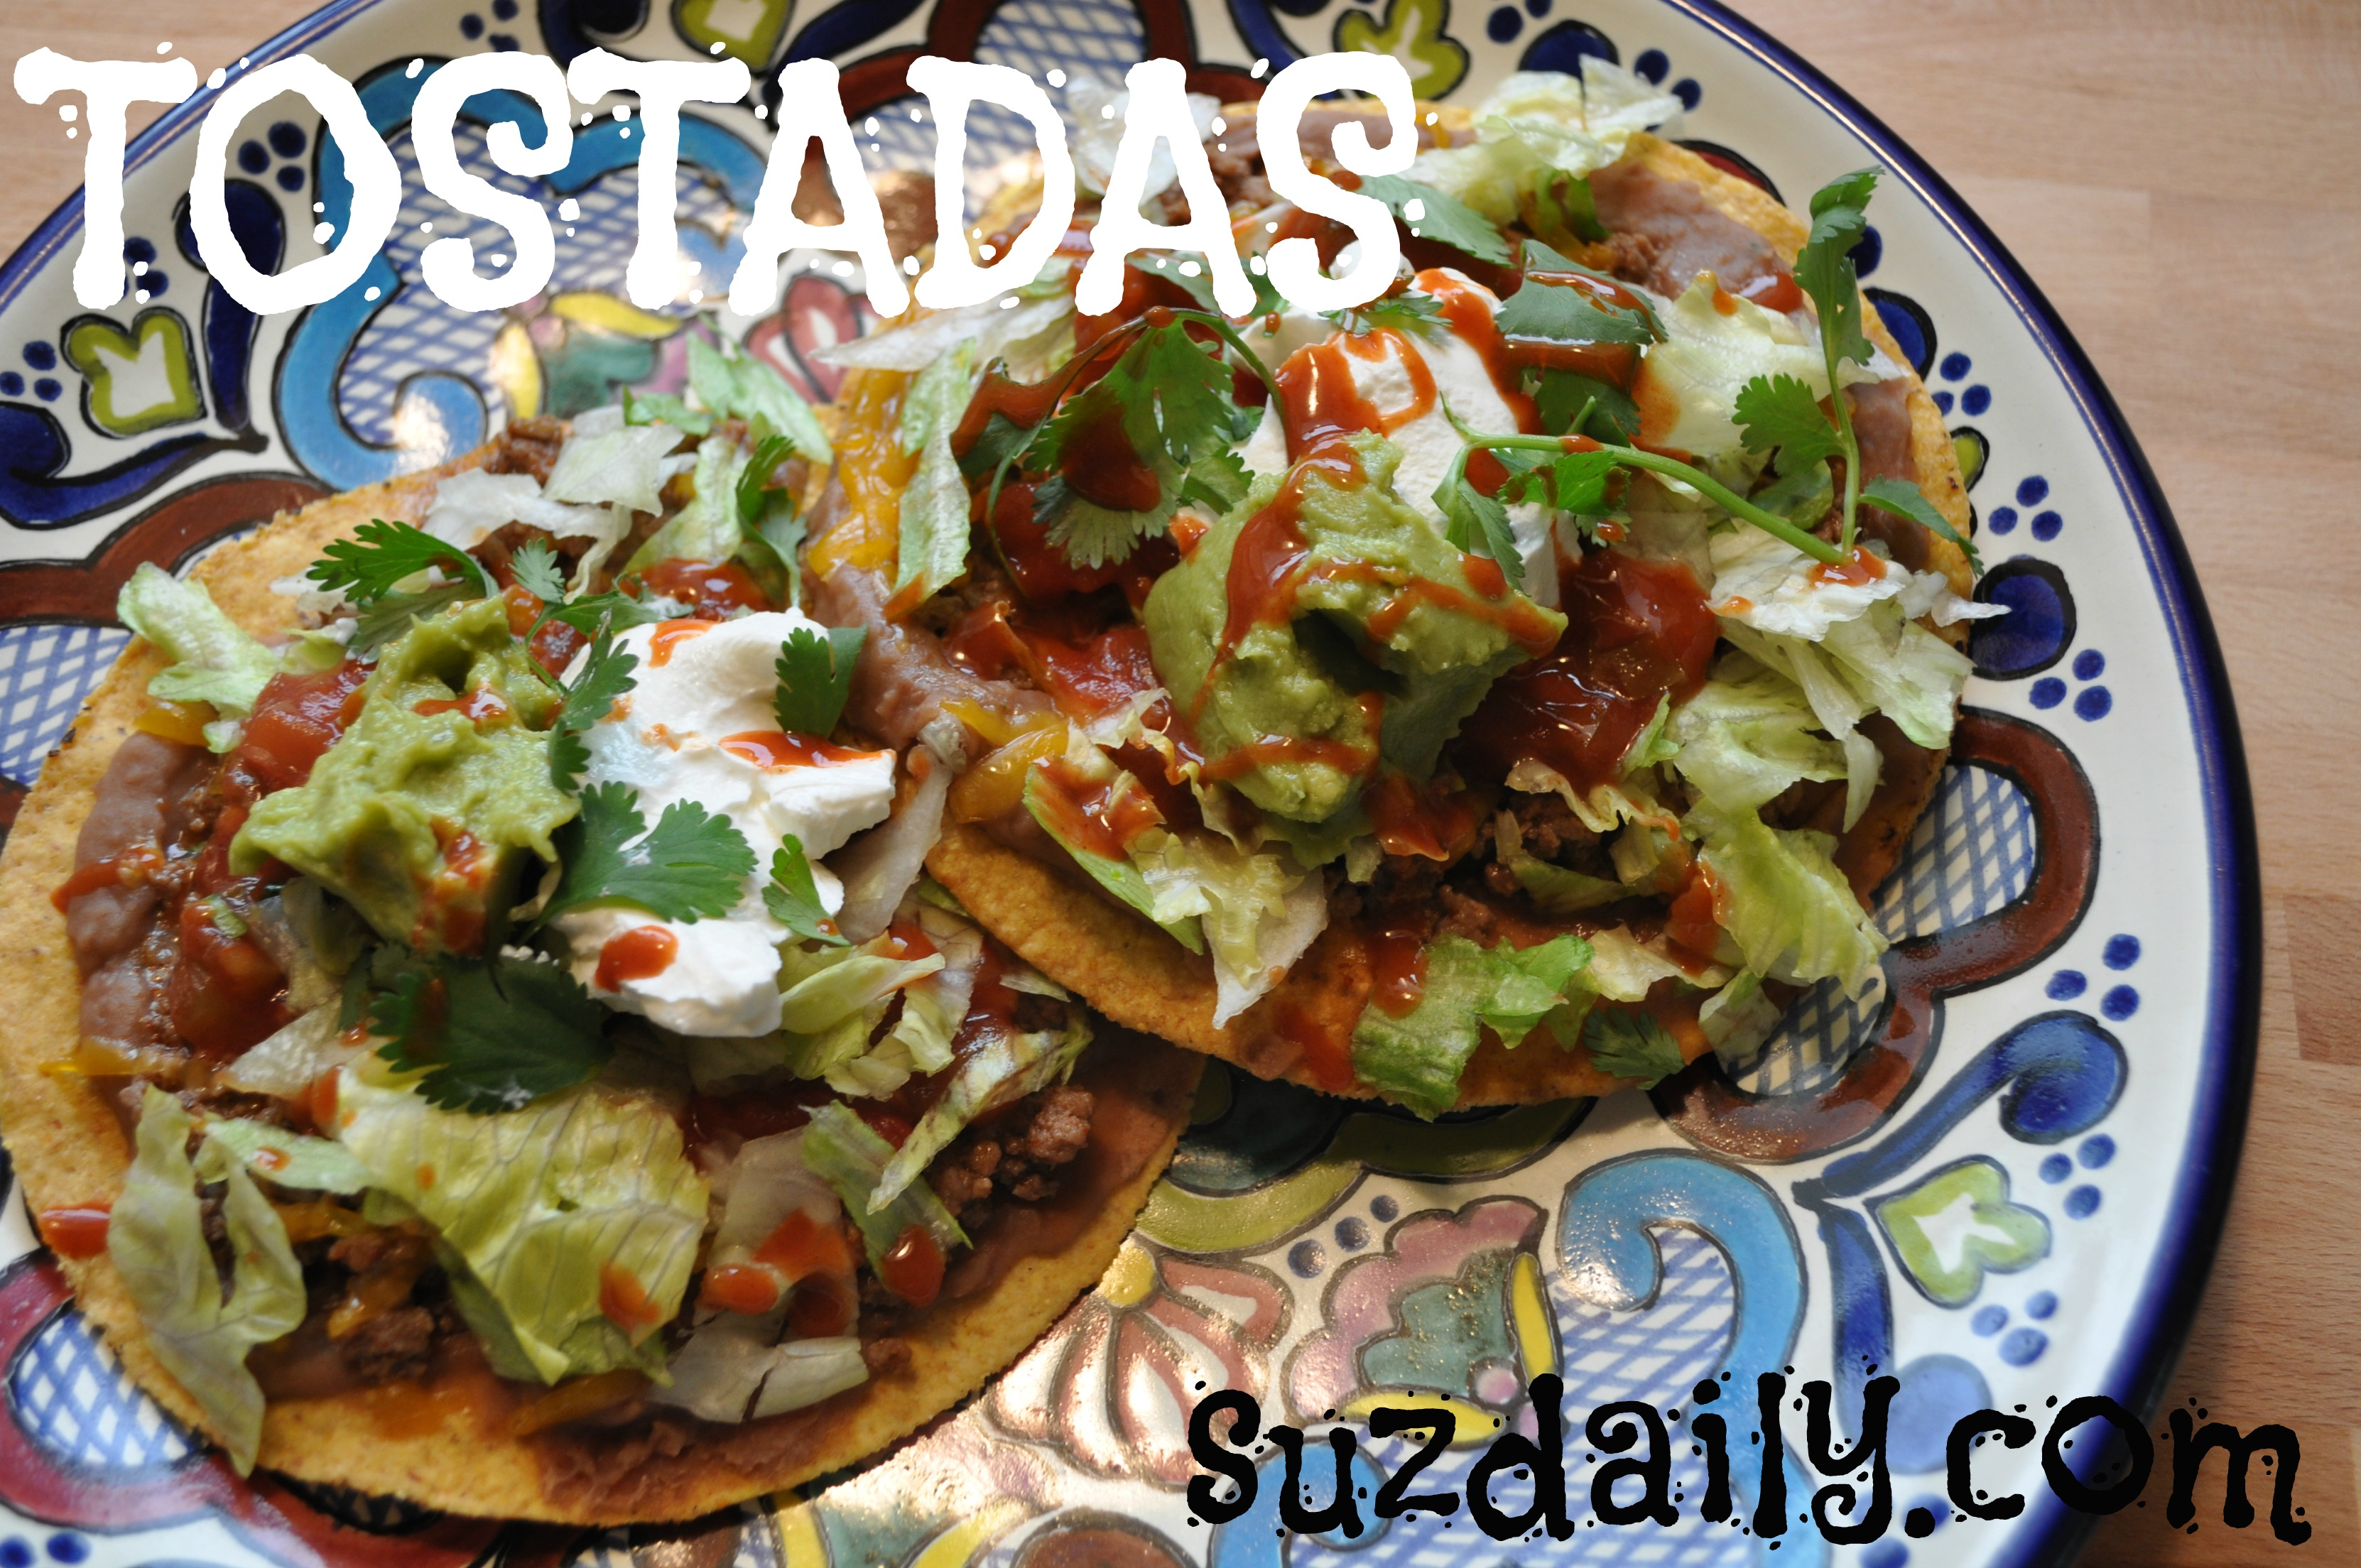 How to Make Tostadas